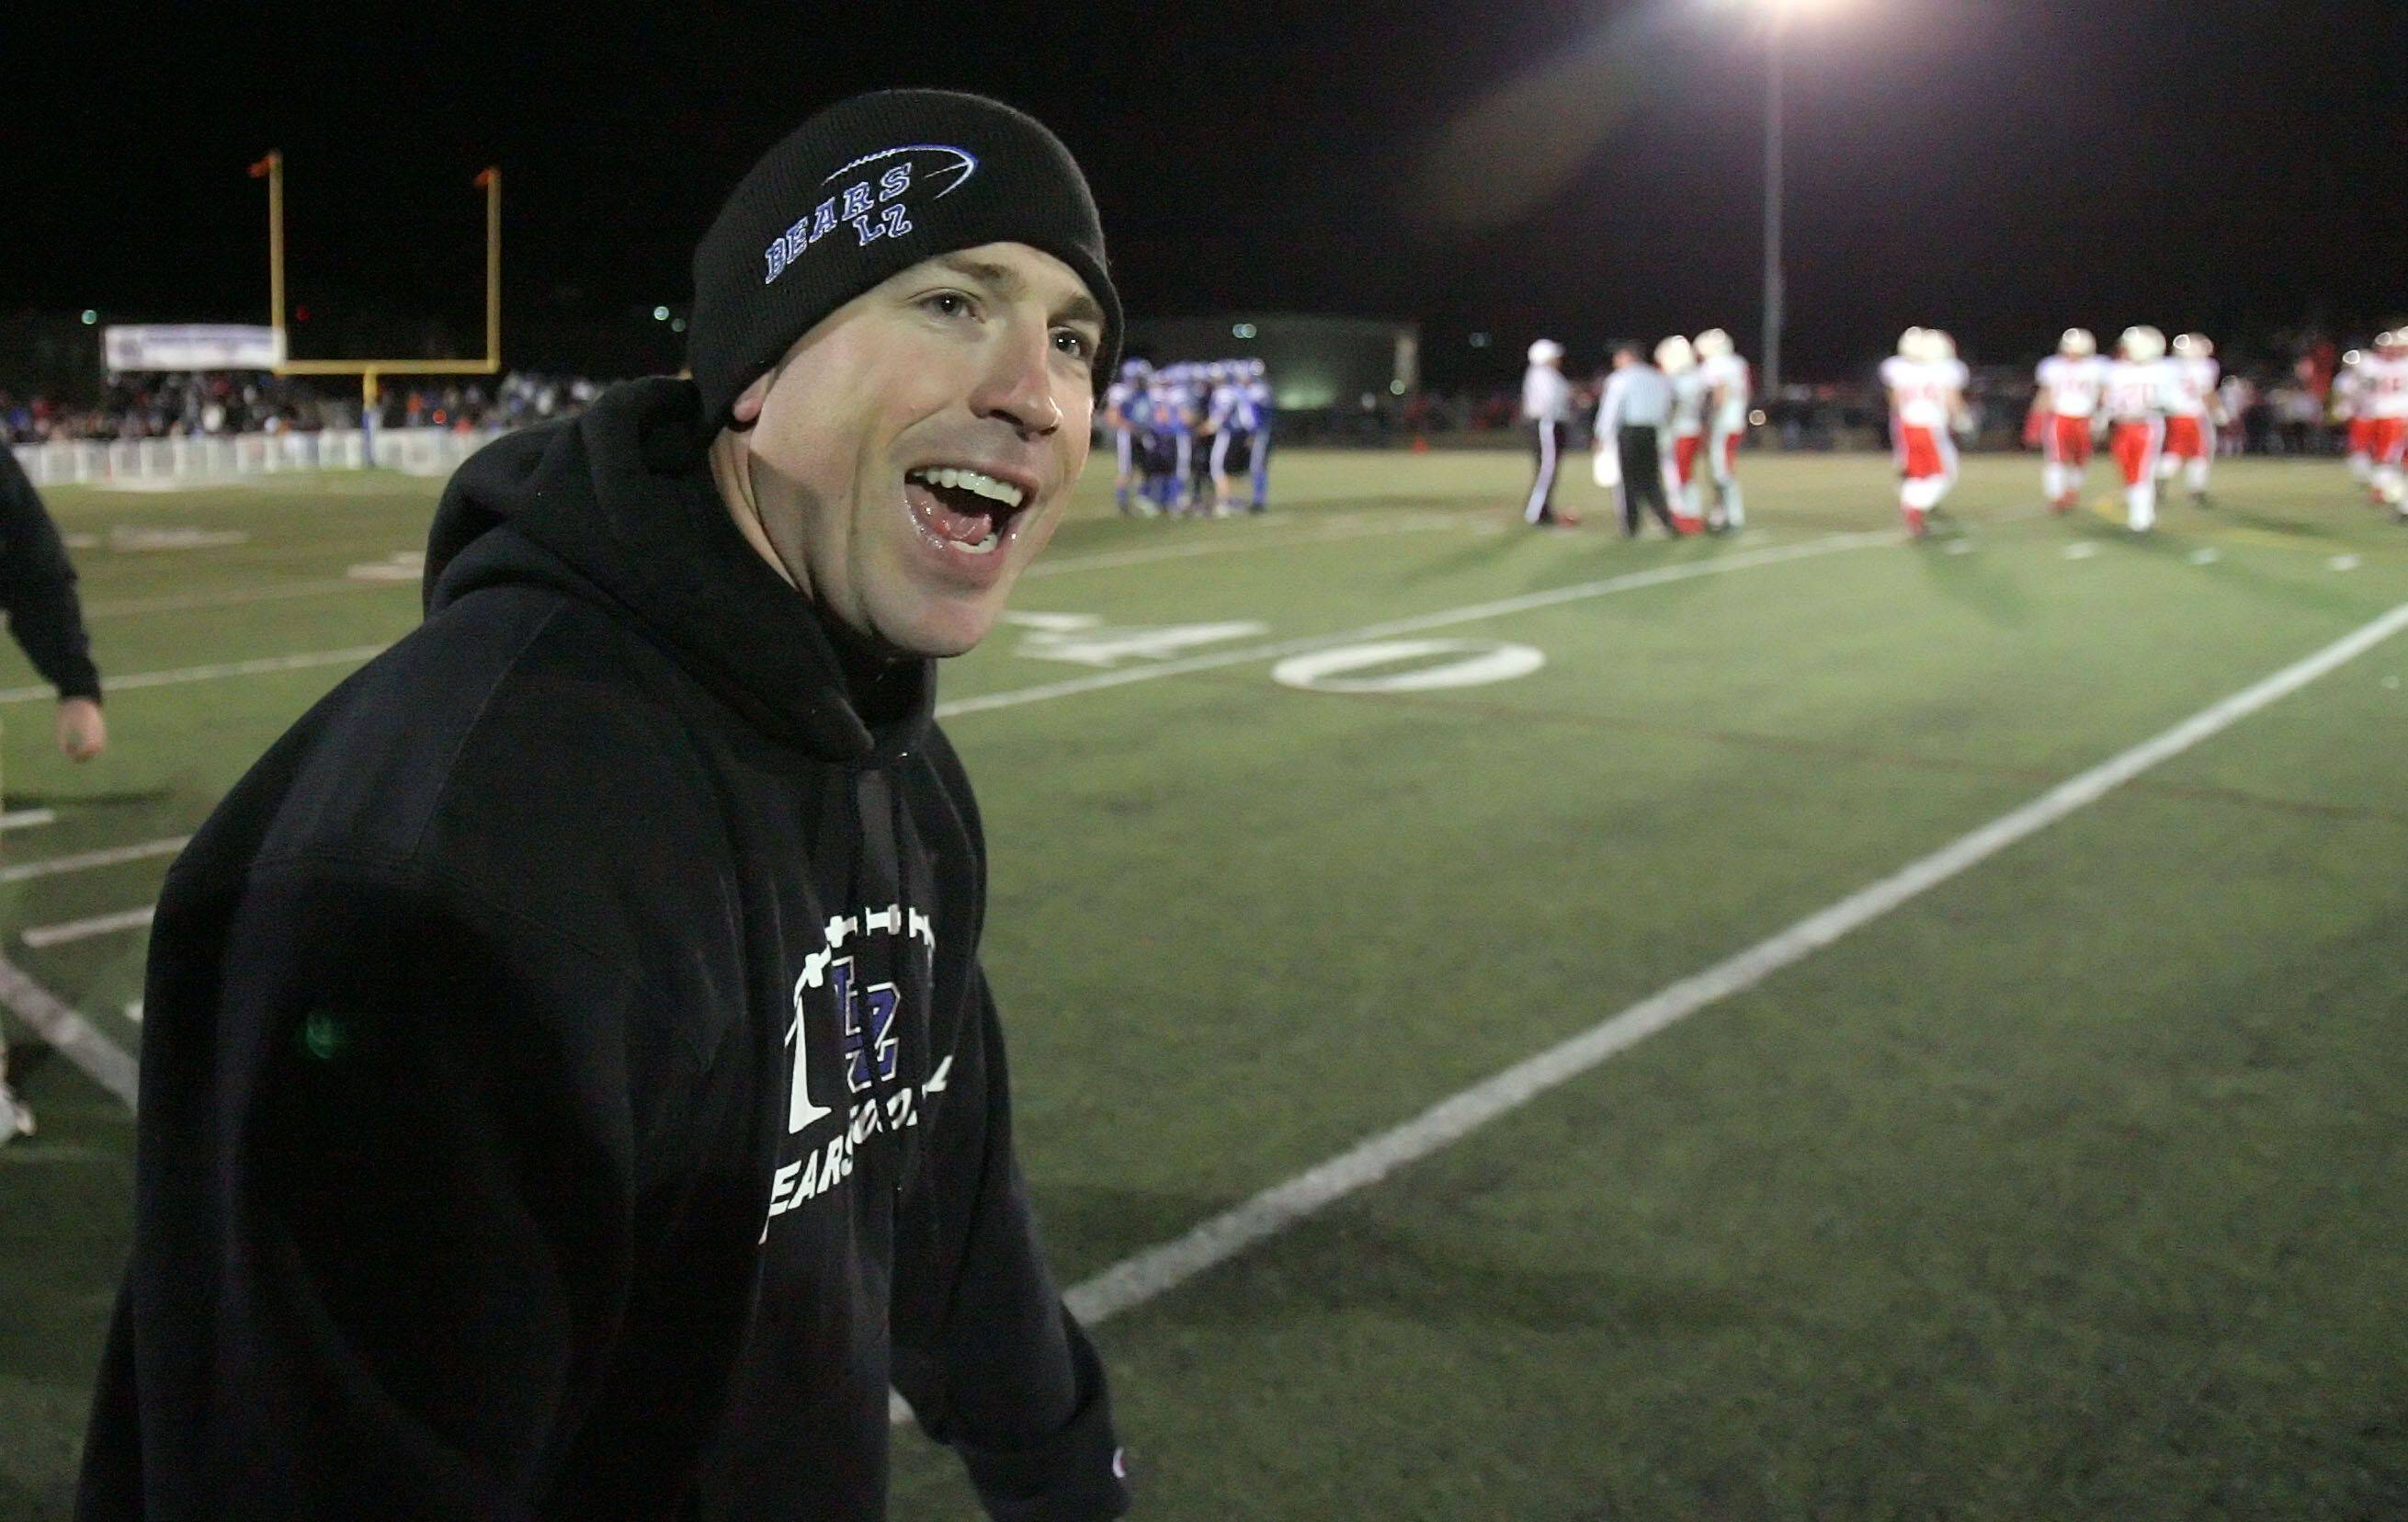 Lake Zurich Head Coach Bryan Stortz celebrates after beating St. Rita 21-0 during the IHSA Class 7A football semi final game Saturday night at Lake Zurich High School.